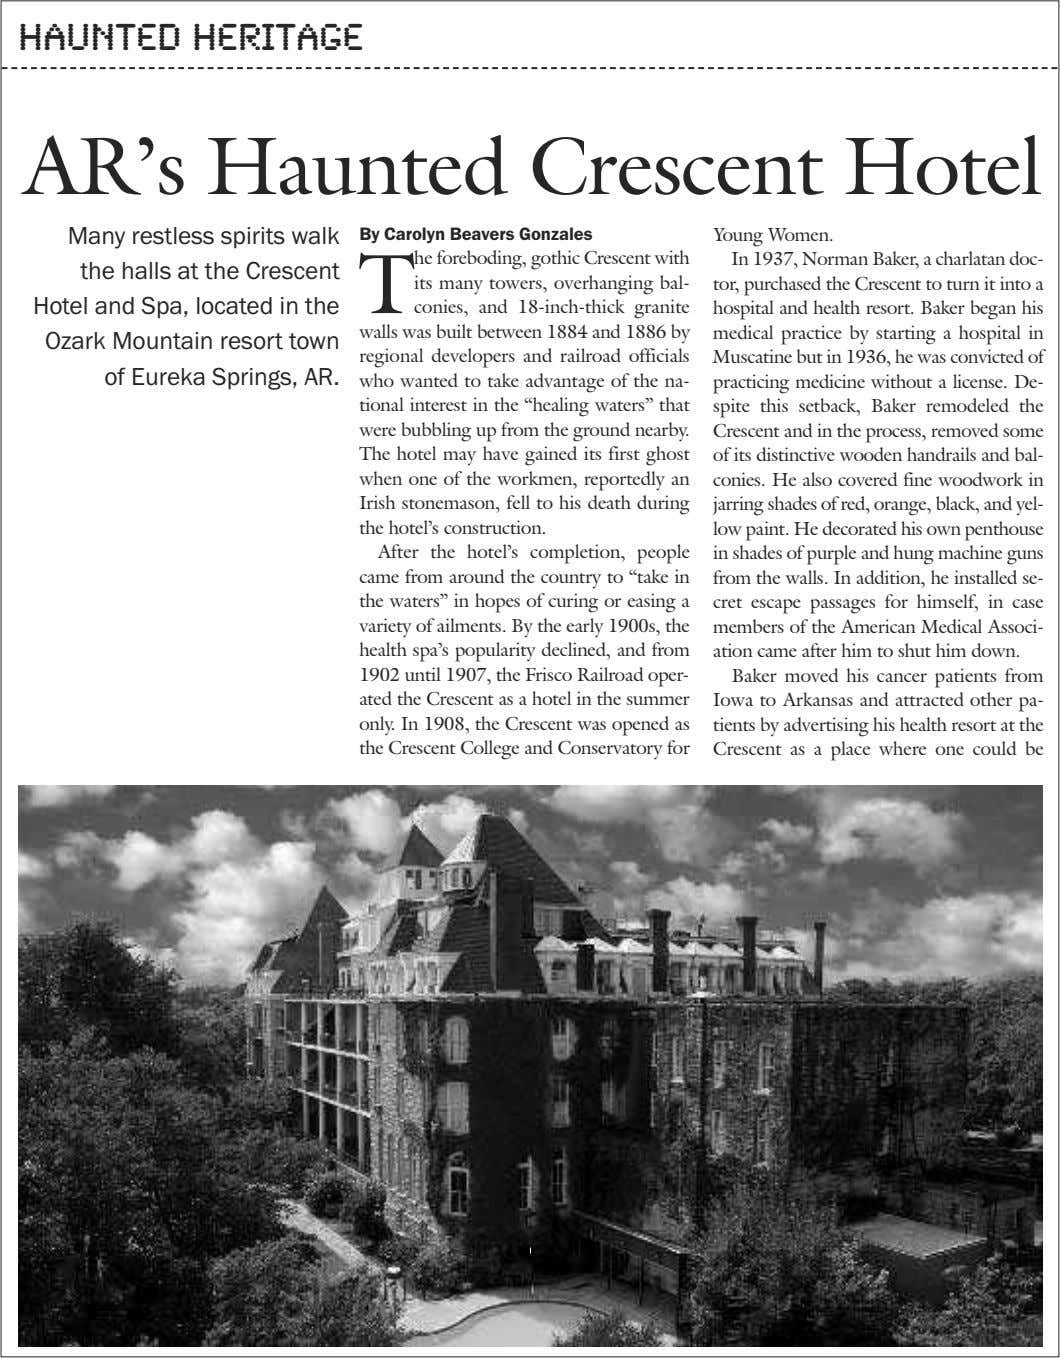 haunted heritage AR's Haunted Crescent Hotel Many restless spirits walk the halls at the Crescent